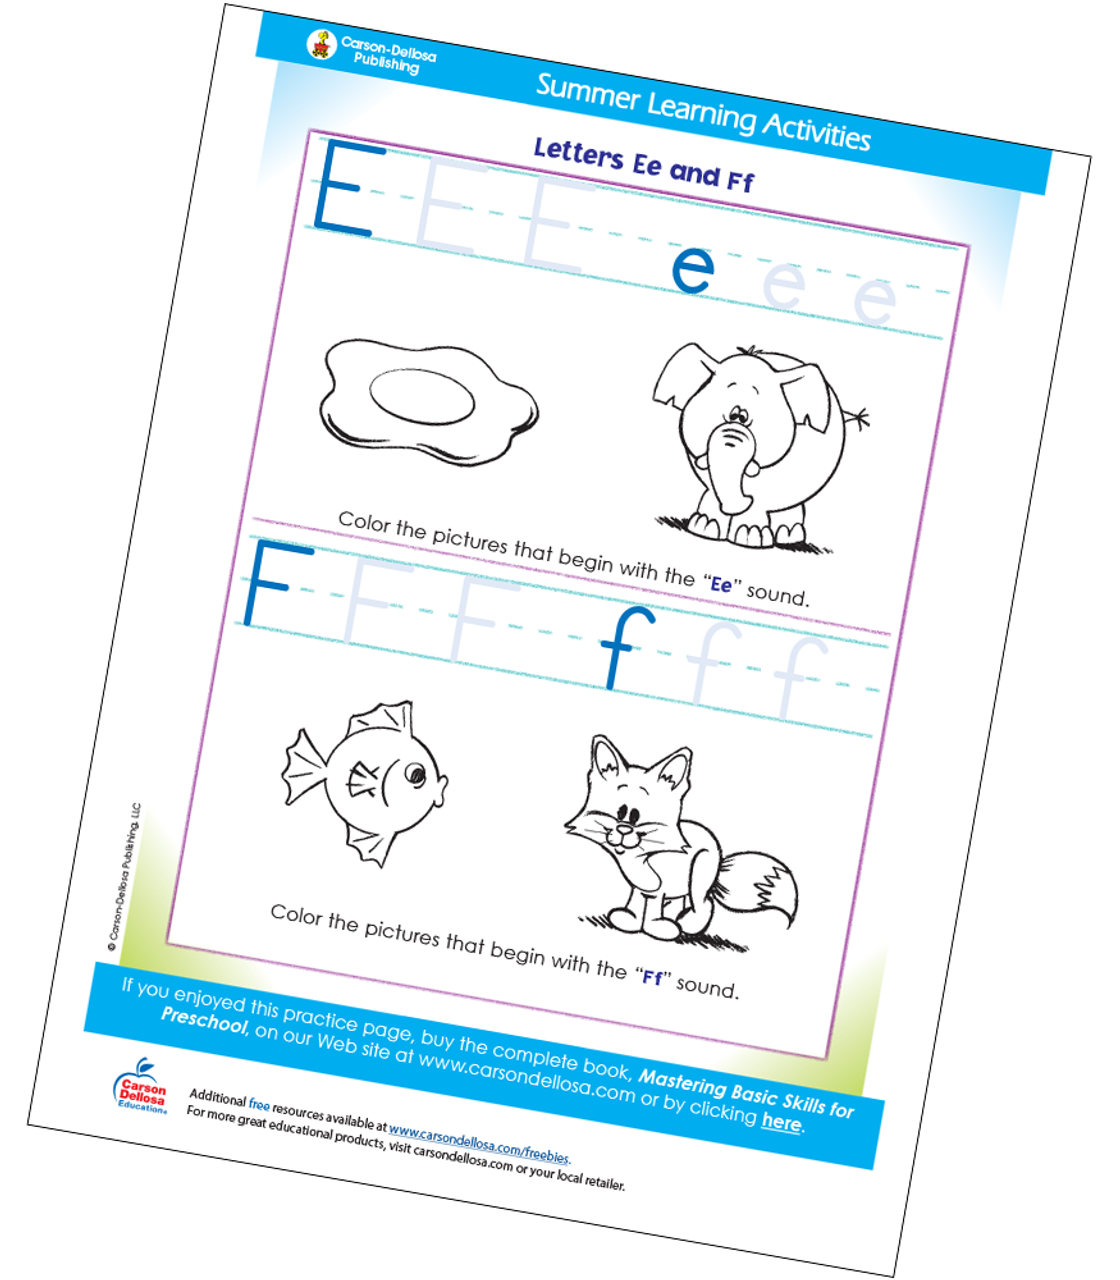 Letters Ee and Ff Free Printable | Carson Dellosa